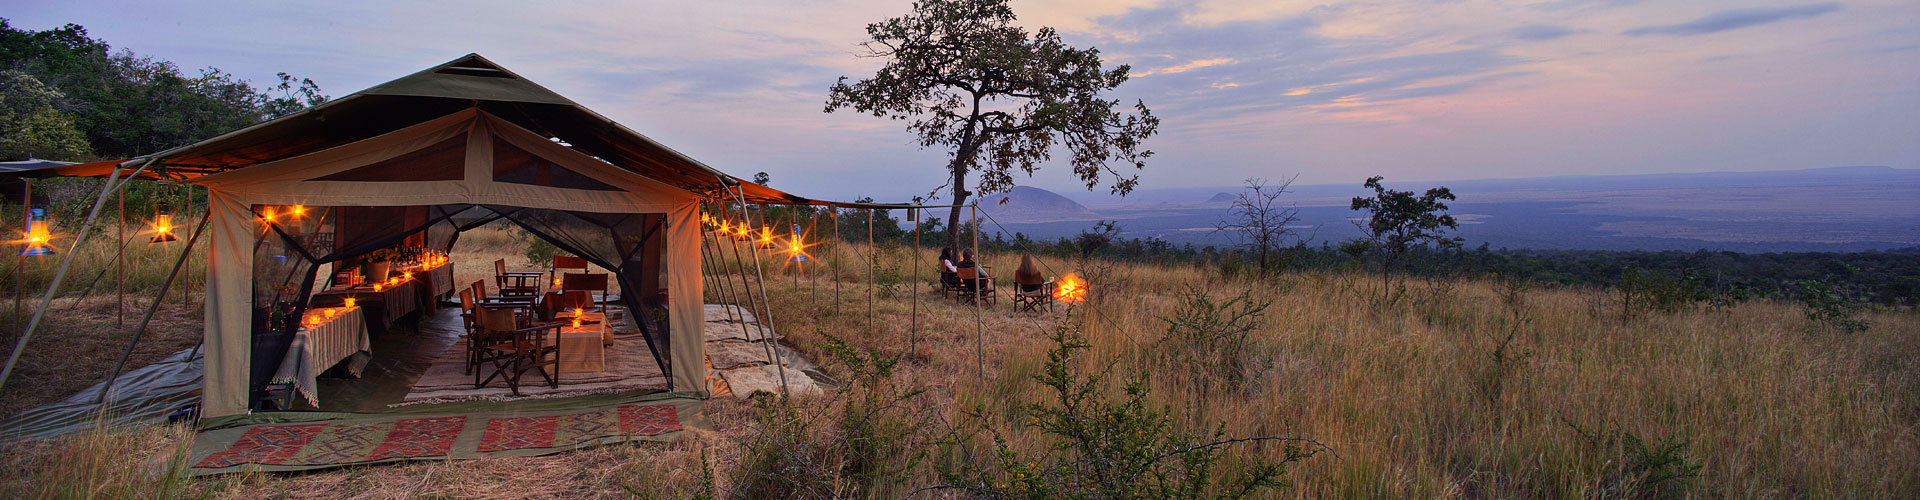 African Mobile Safaris